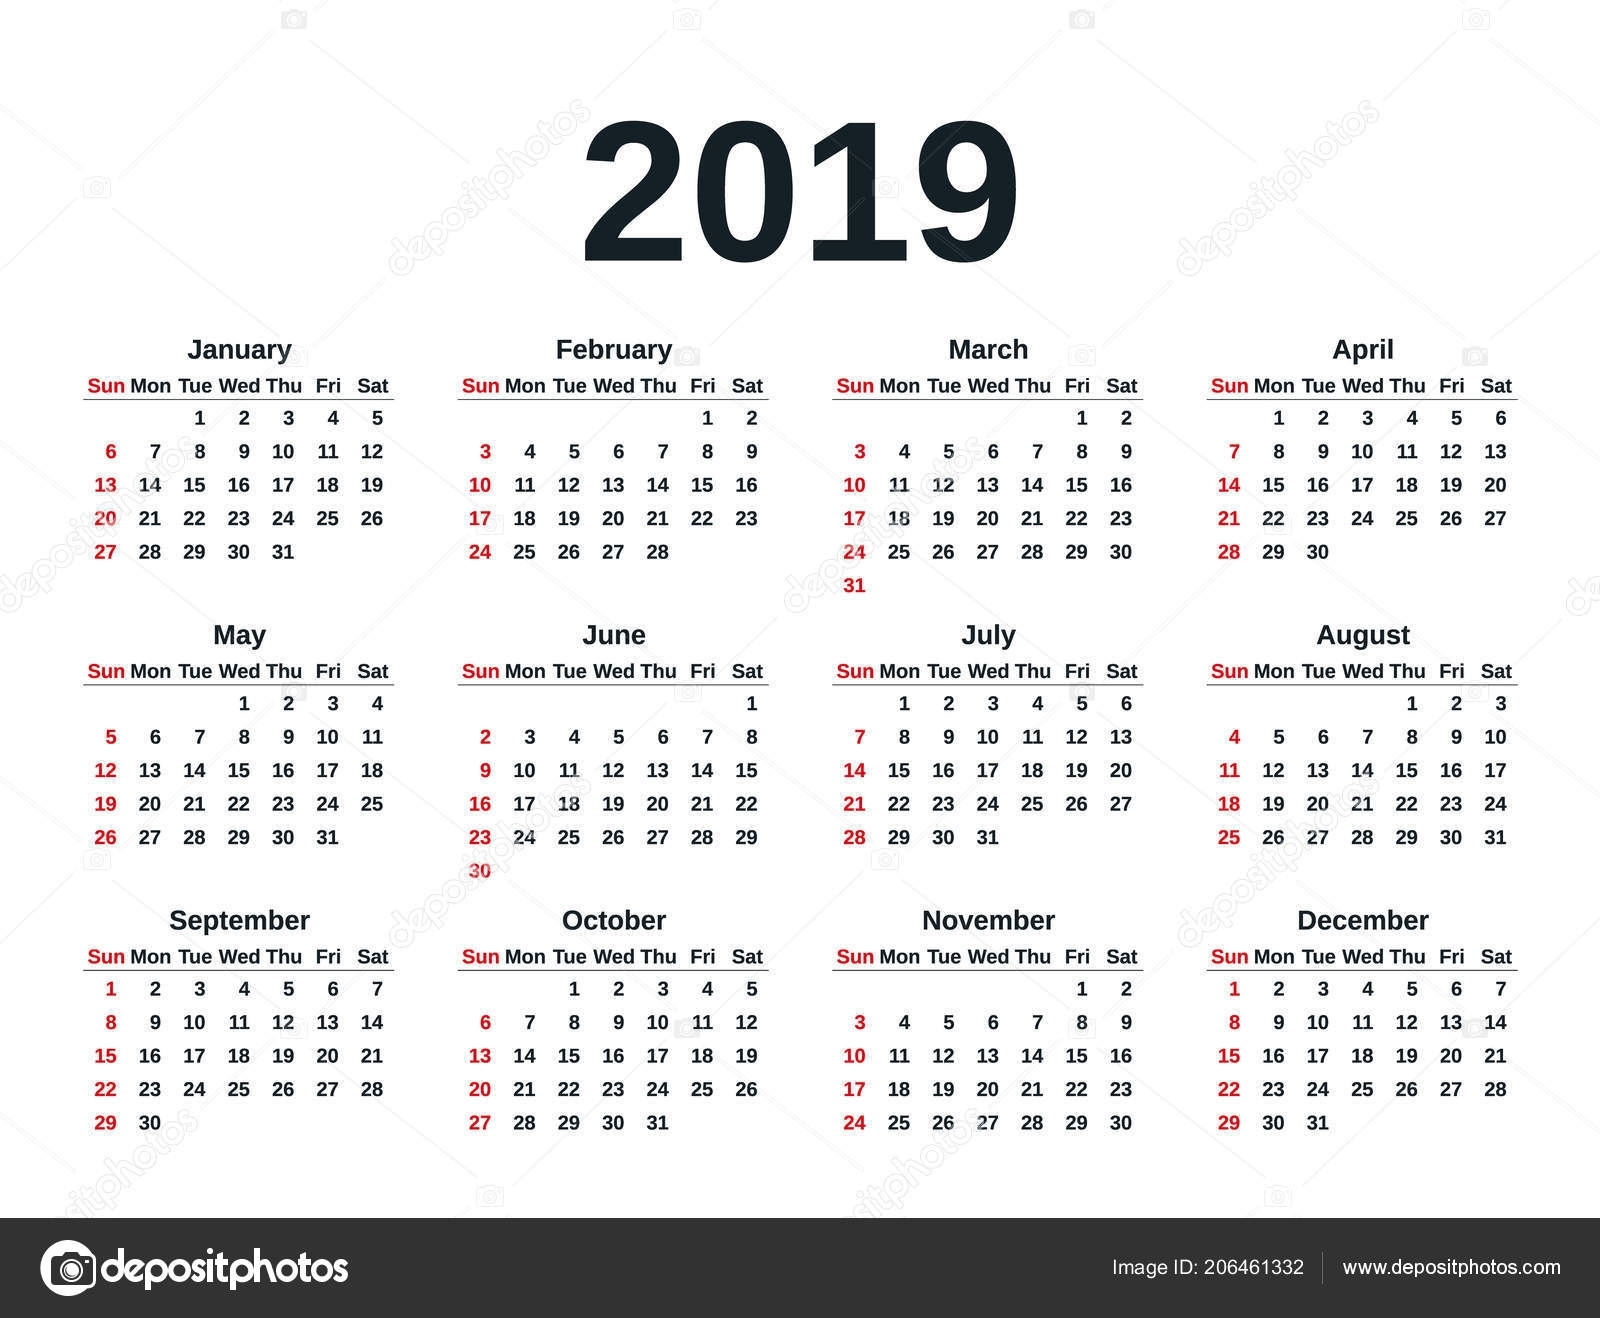 Calendar 2019 Simple Style Week Starts Sunday Vector